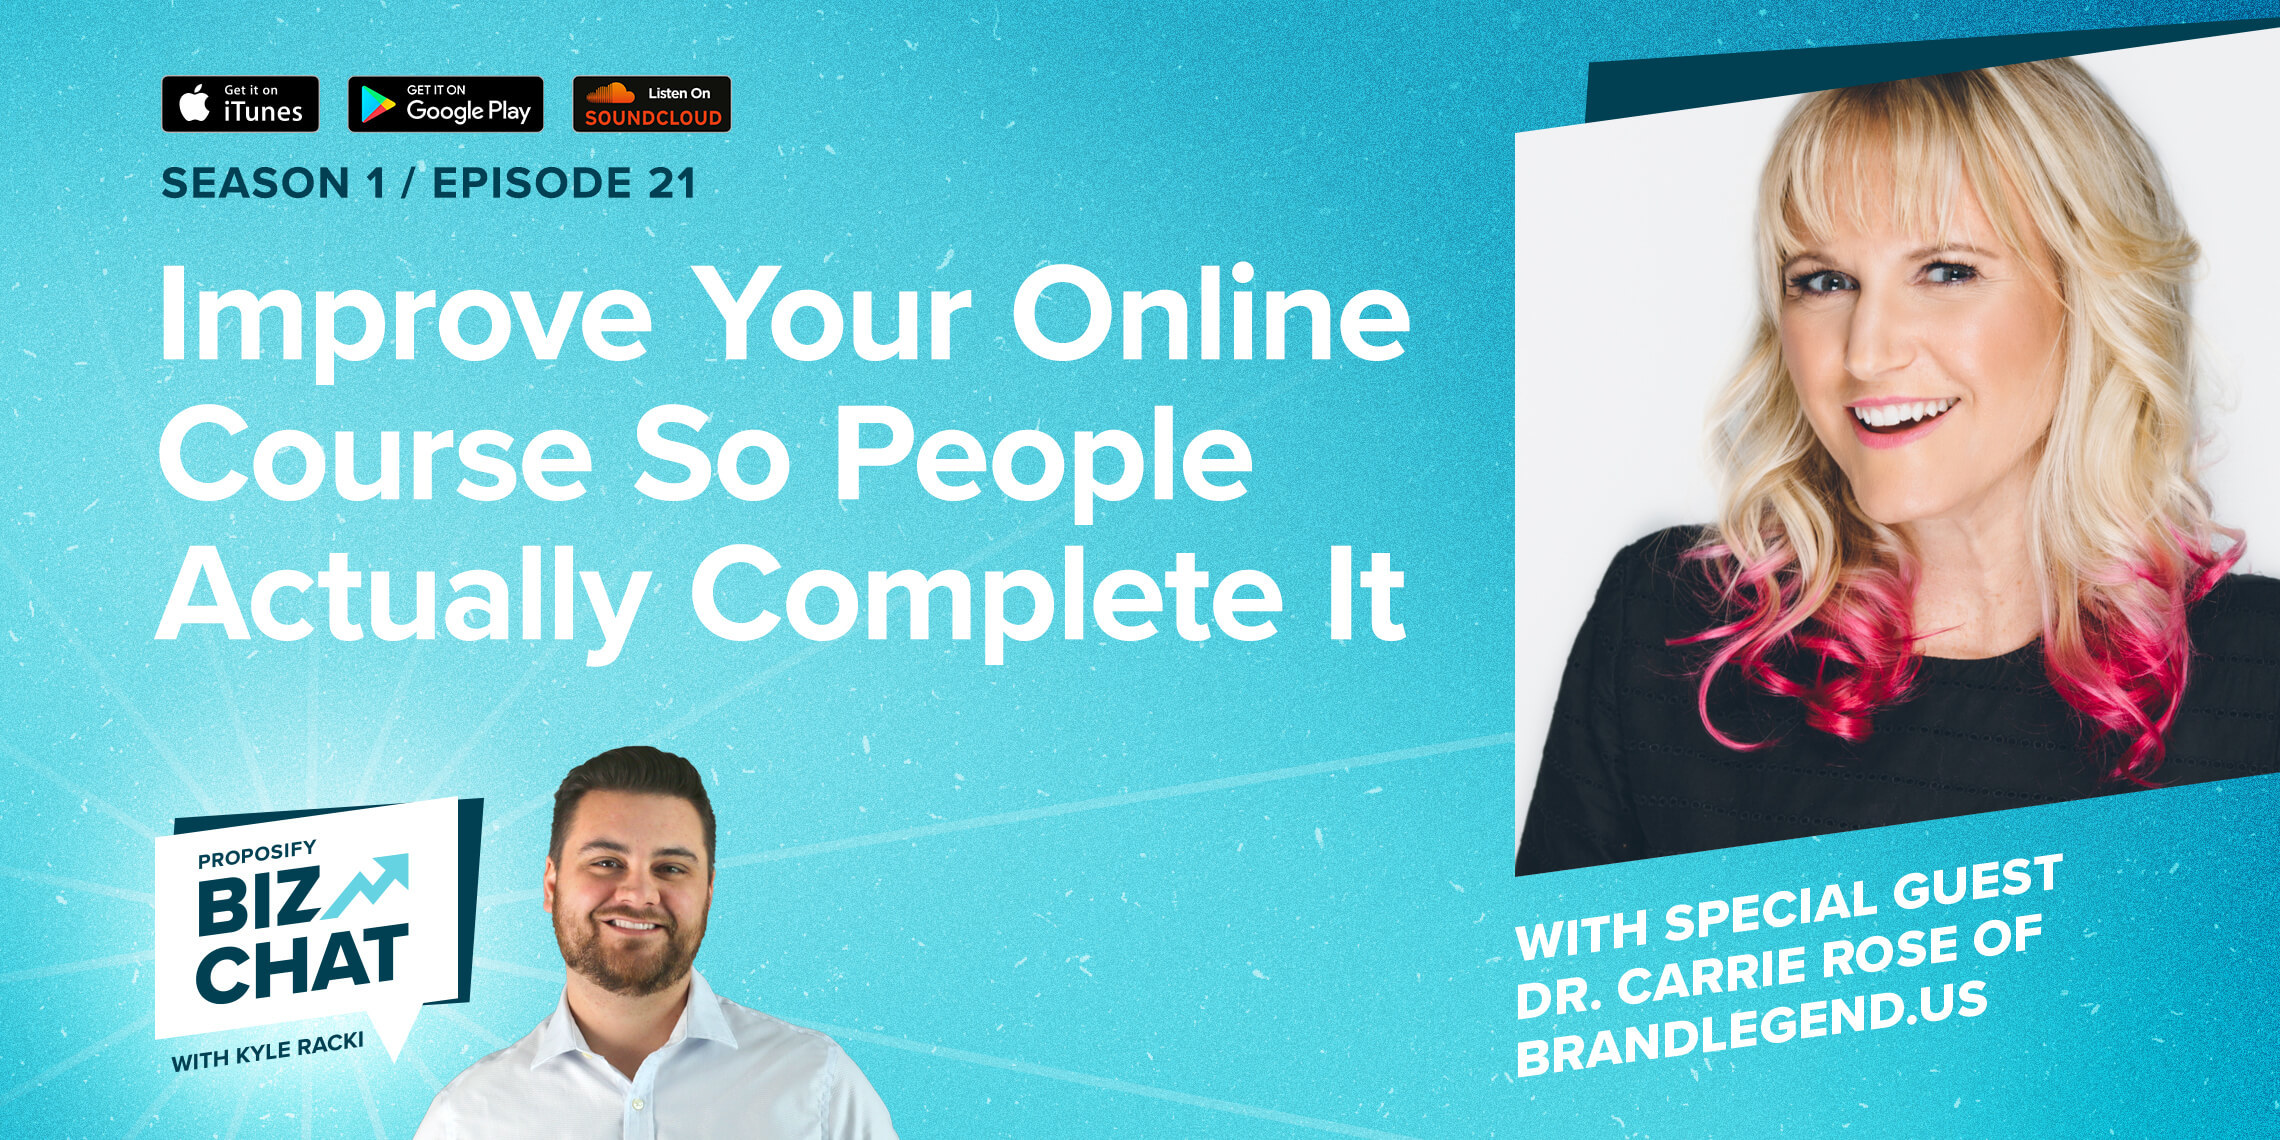 Improve Your Online Course So People Actually Complete It